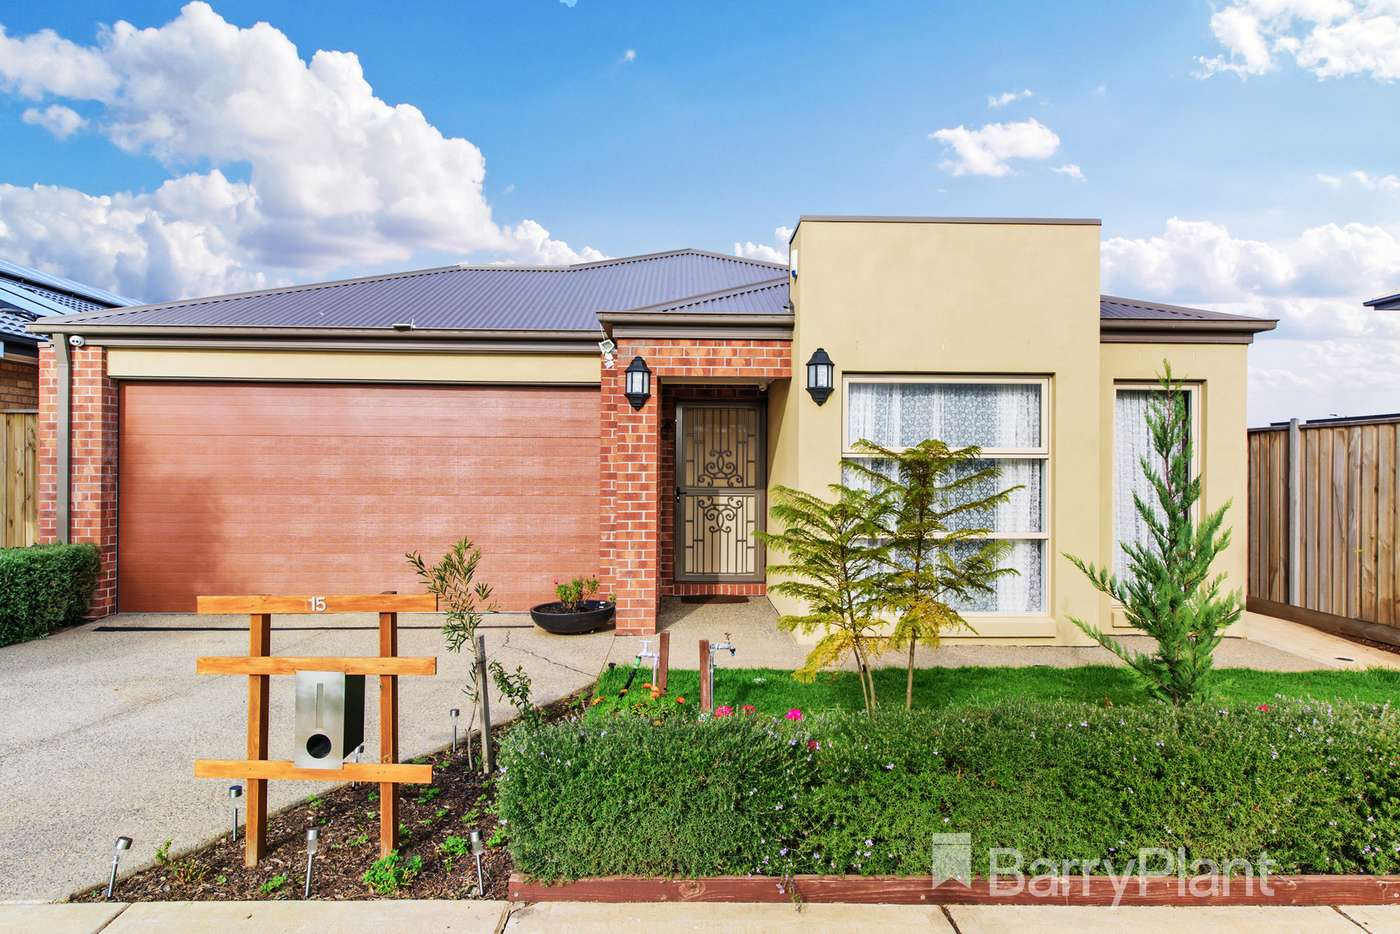 Main view of Homely house listing, 15 Perrin Circuit, Tarneit VIC 3029